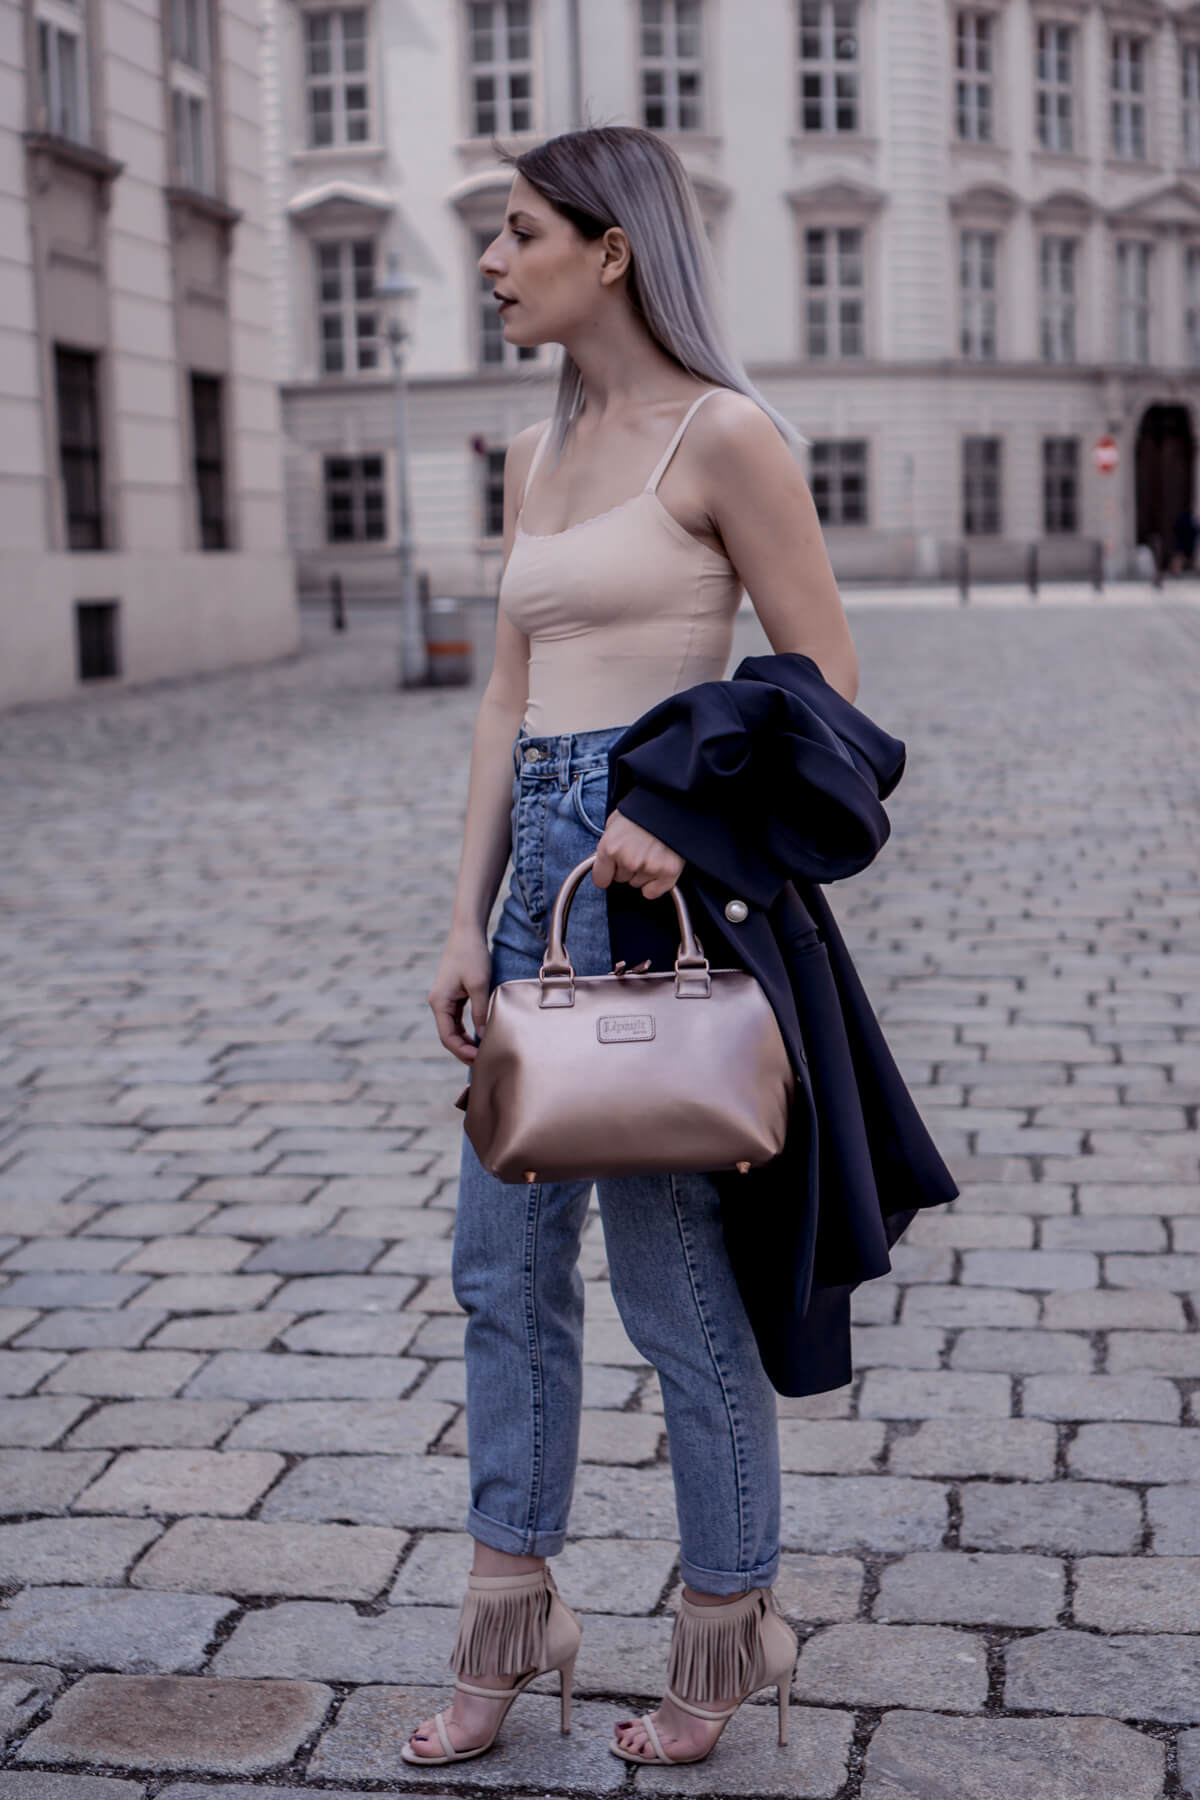 Vintage Levis Jeans combined with nude tones